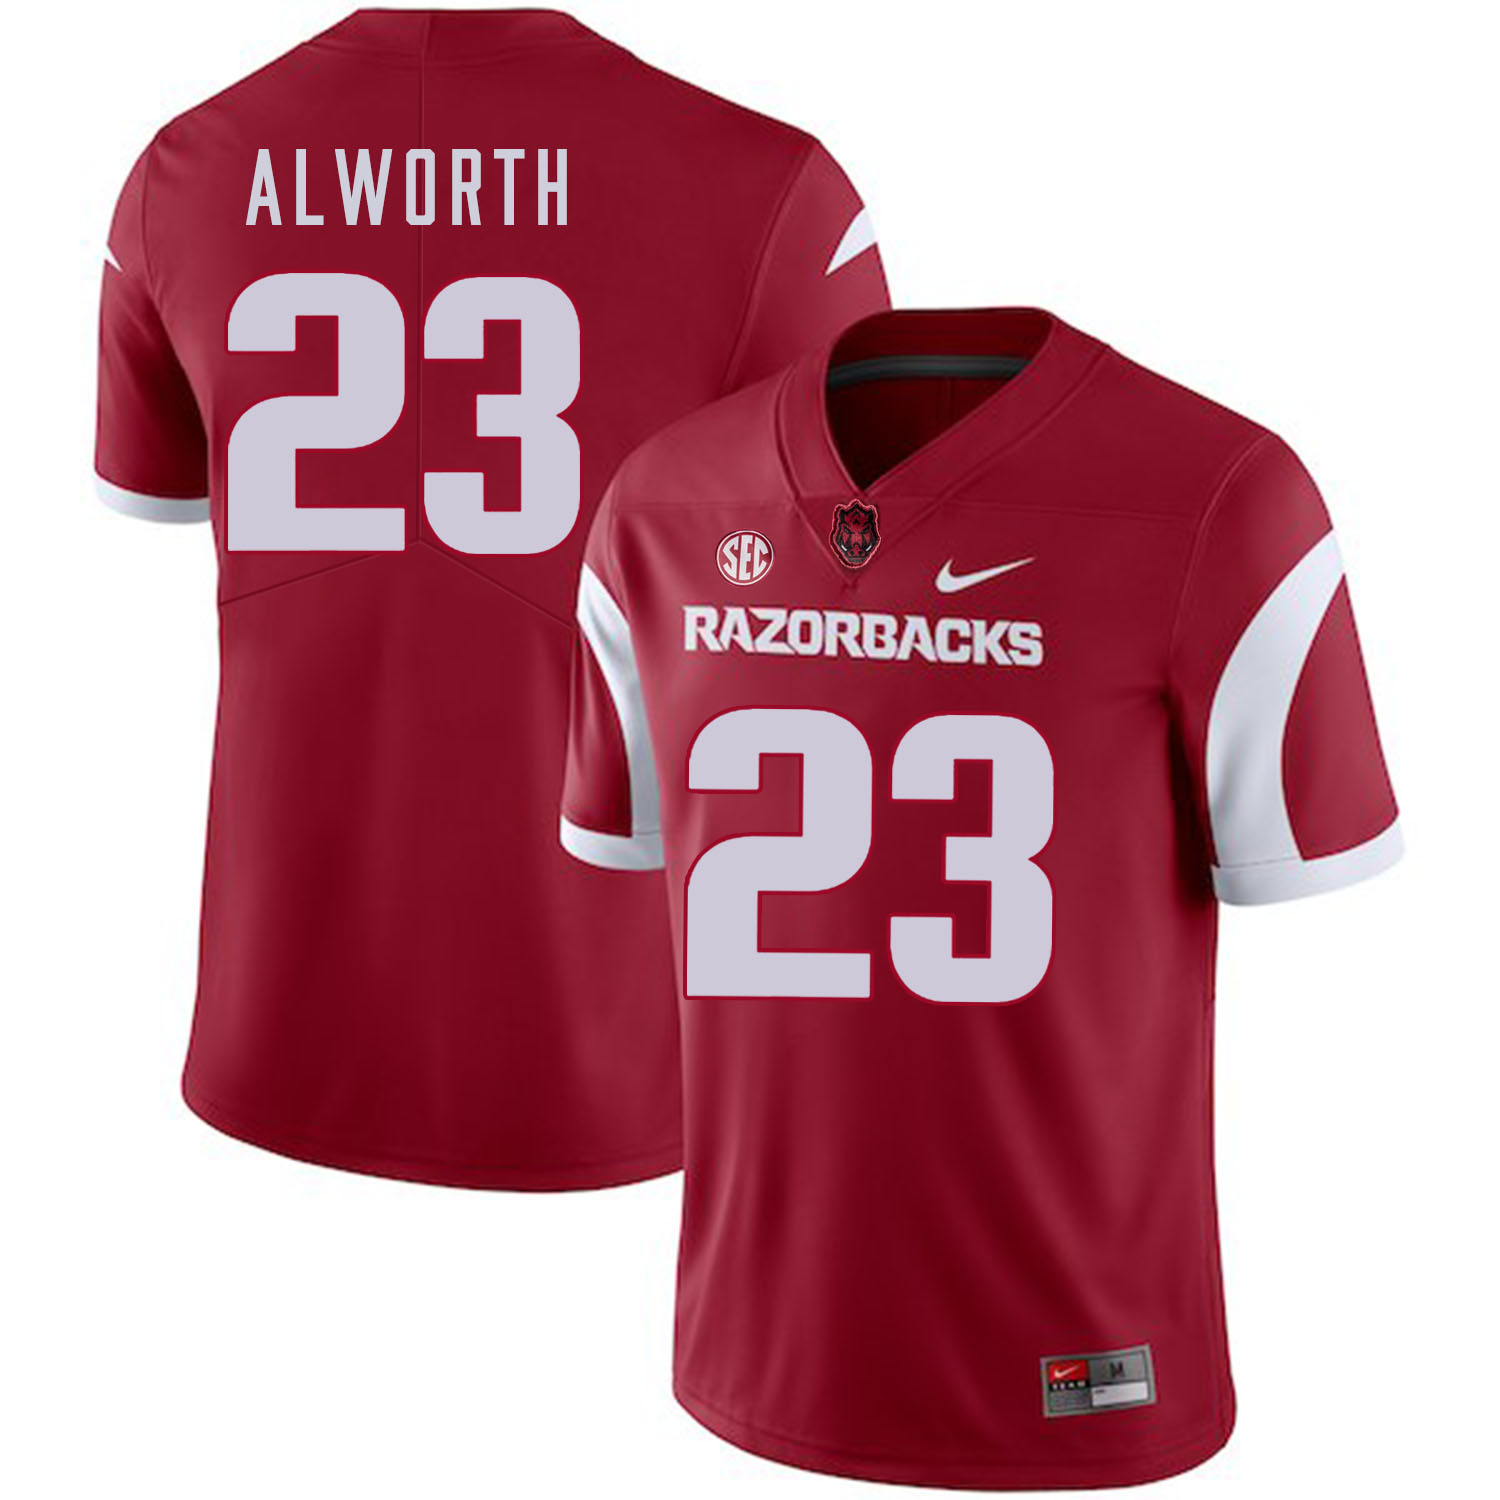 Arkansas Razorbacks 23 Lance Alworth Red College Football Jersey